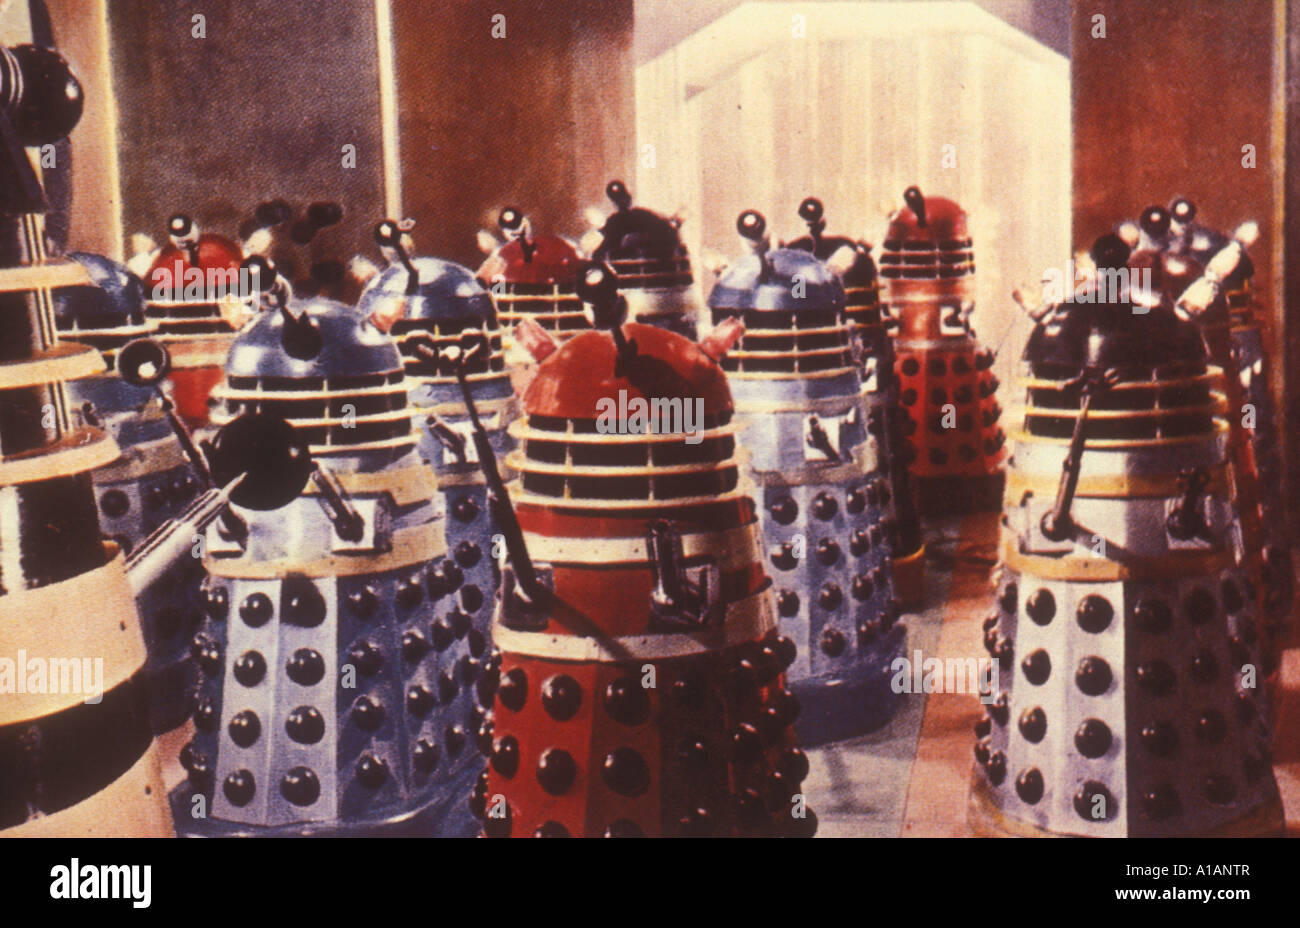 Daleks Invasion Earth 2150 A D Year 1966 Director Gordon Fleming - Stock Image